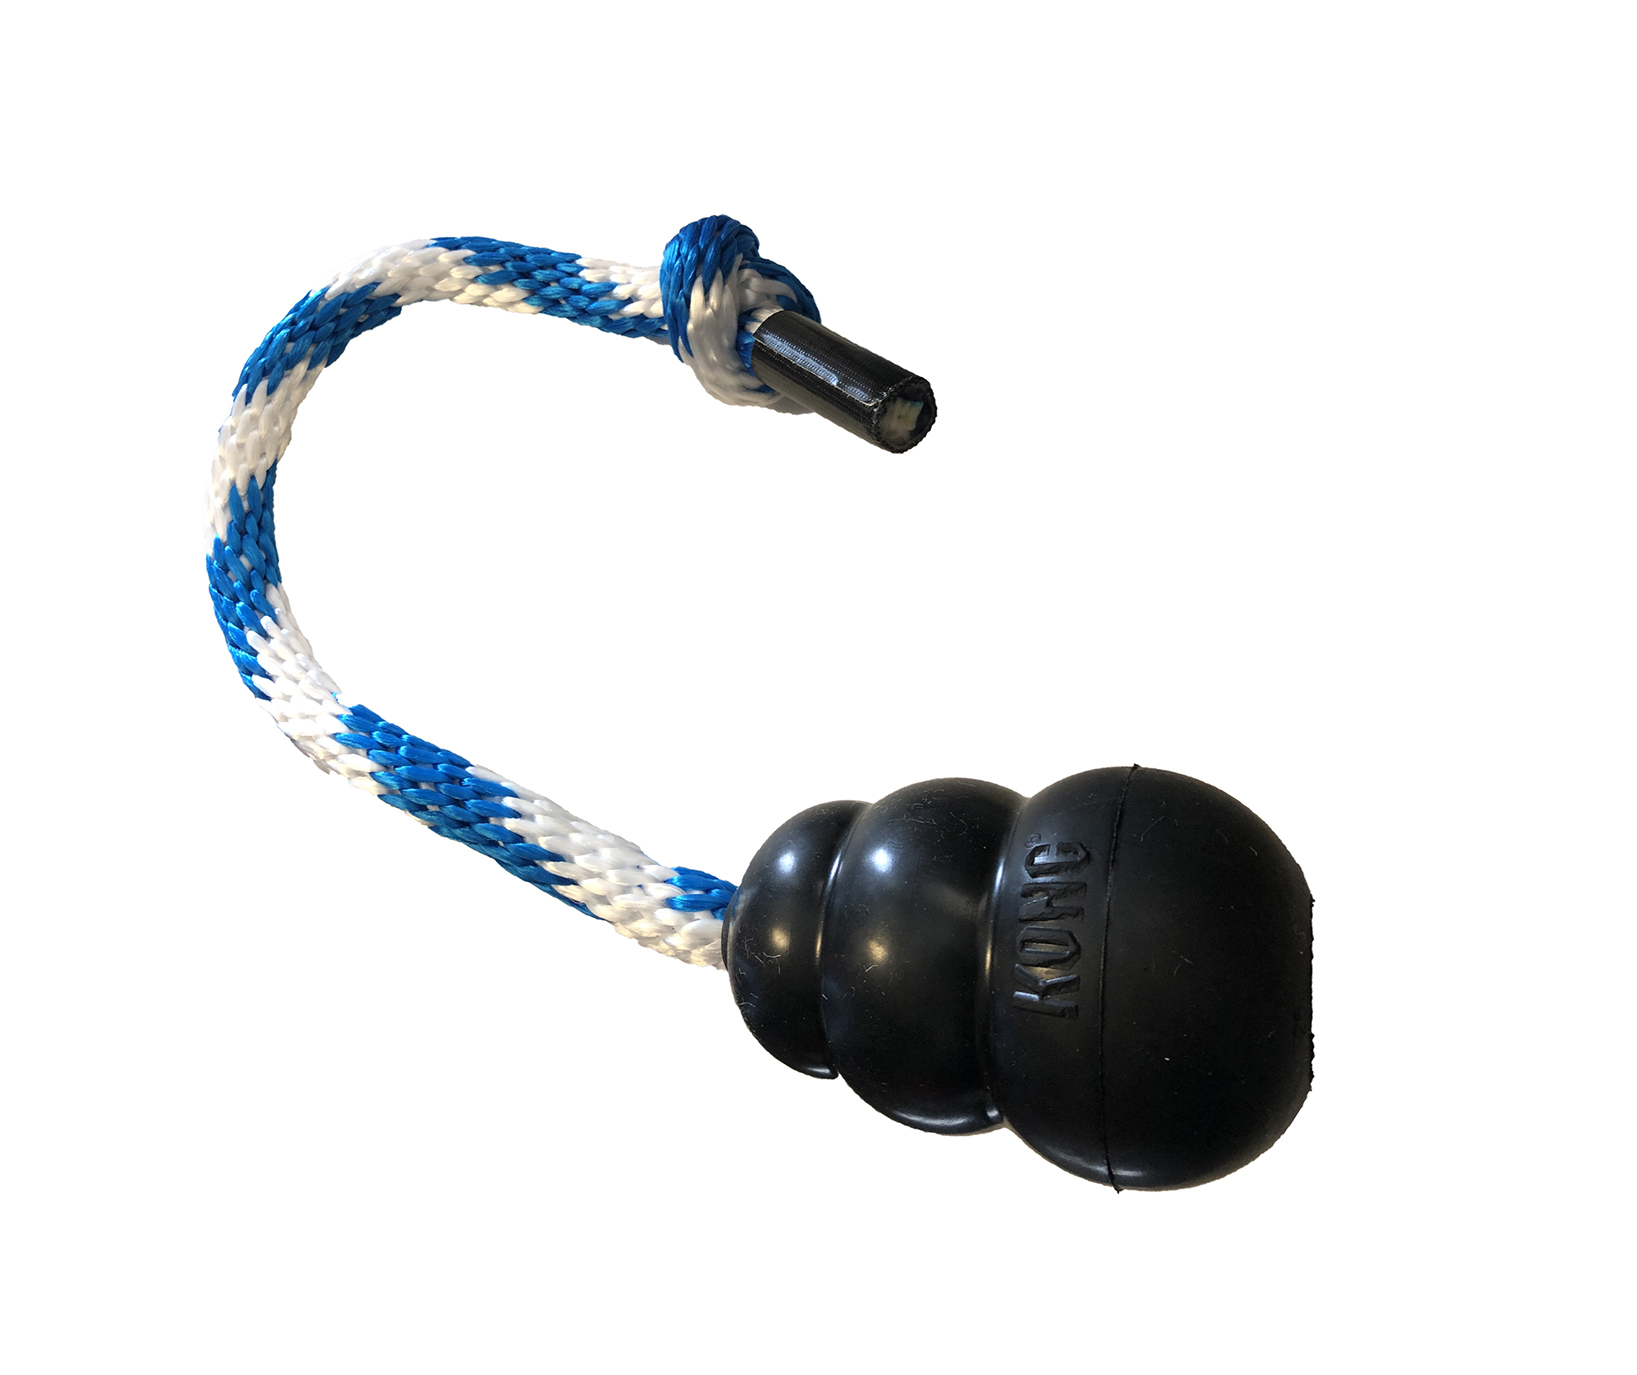 PS300 - Kong on a rope